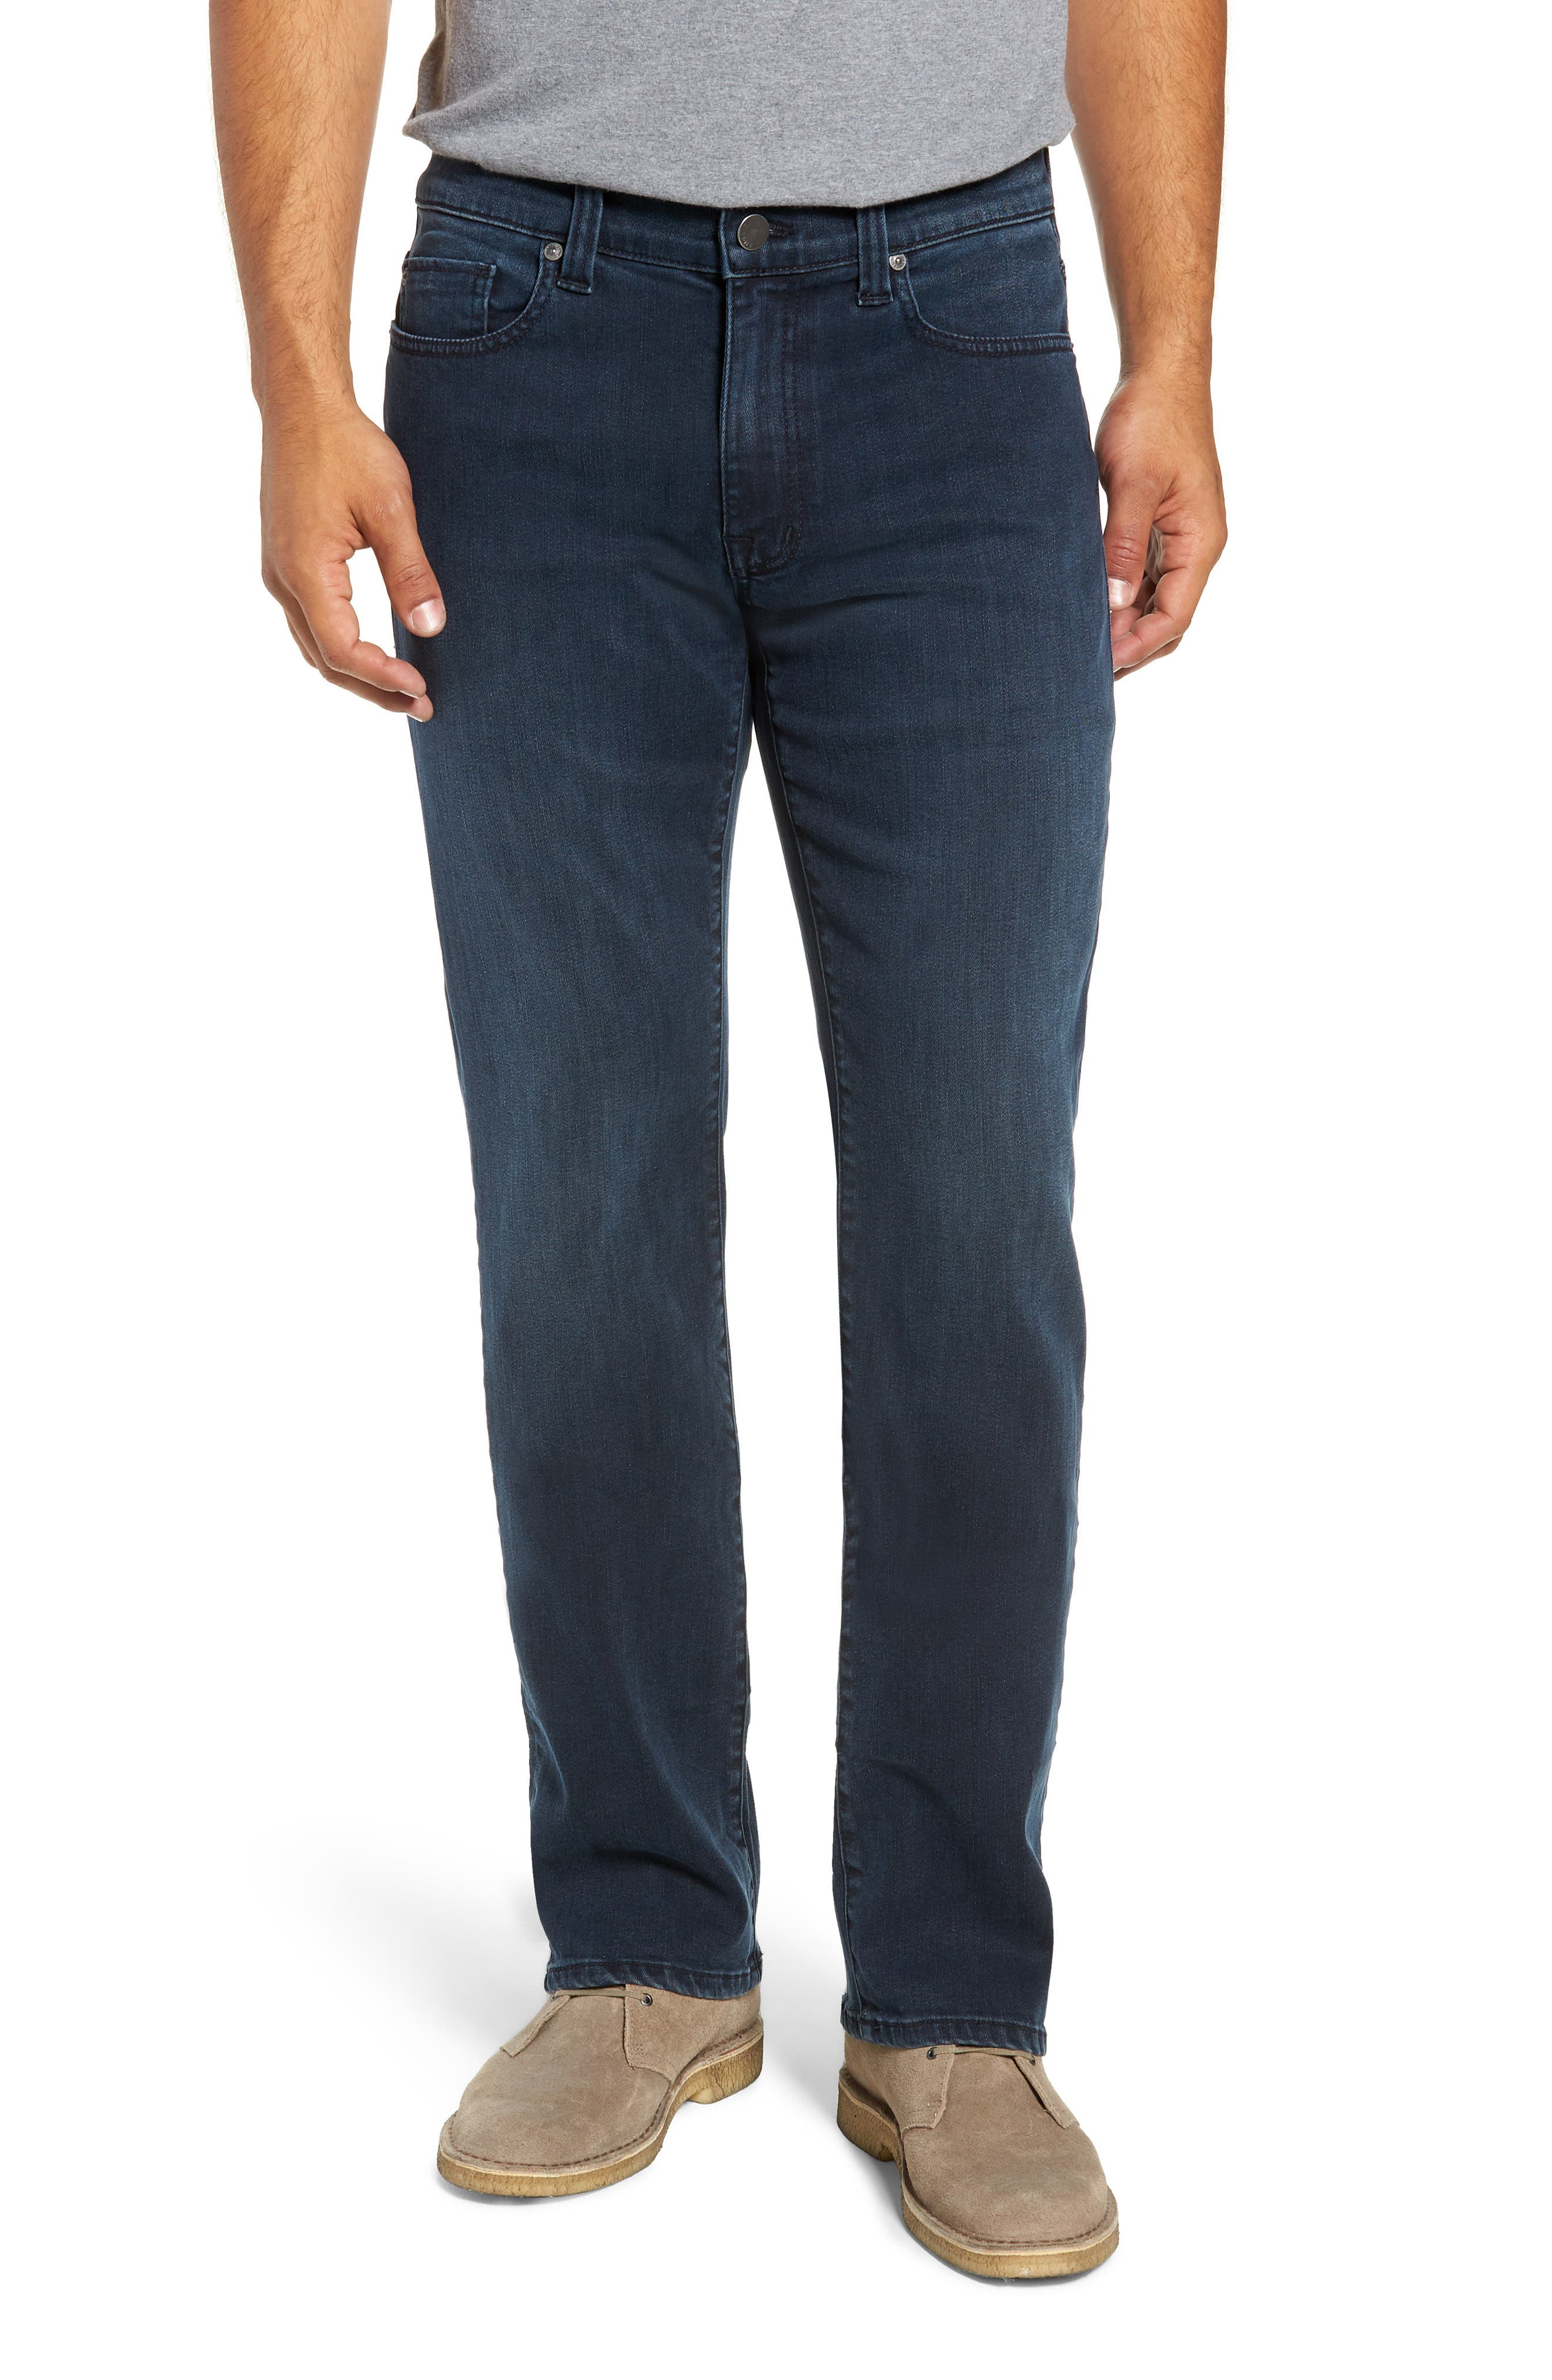 50-11 Relaxed Fit Jeans,                             Main thumbnail 1, color,                             MILLI BLUE